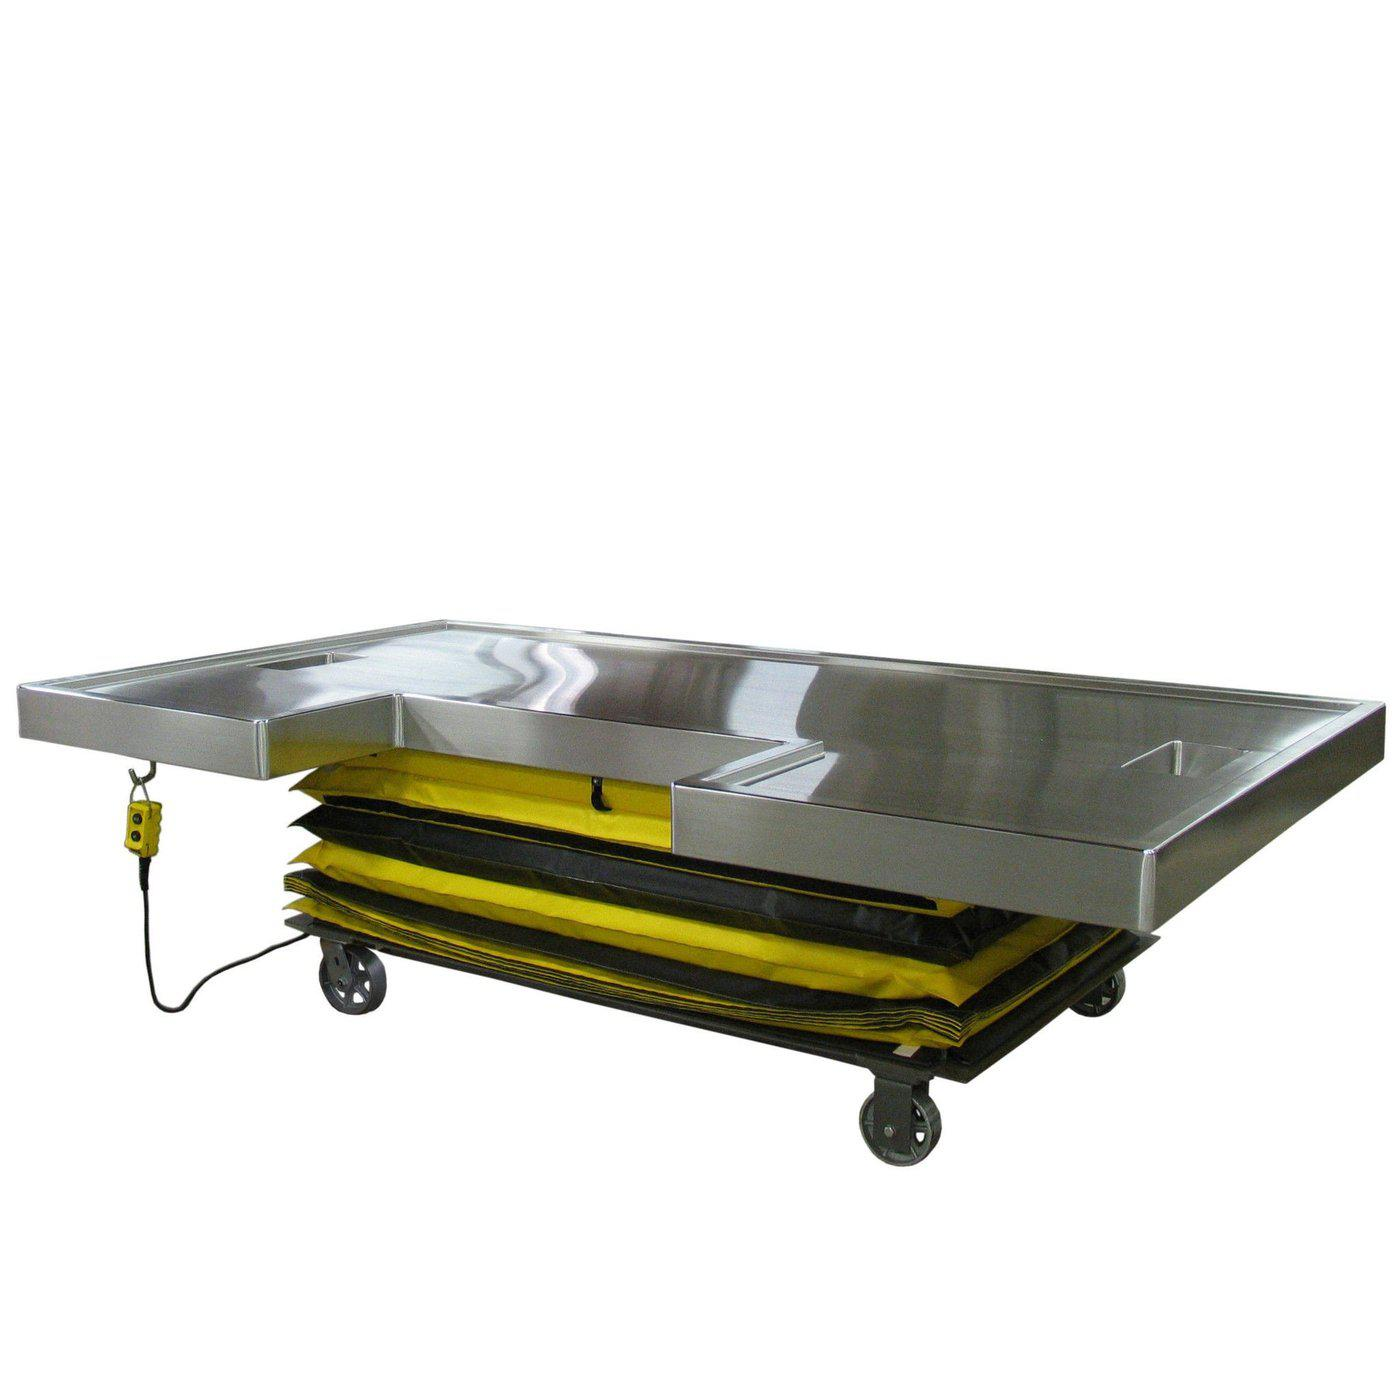 Mobile Hydraulic Necropsy Table-Necropsy Dissection Tables-Mortech Manufacturing Company Inc. Quality Stainless Steel Autopsy, Morgue, Funeral Home, Necropsy, Veterinary / Anatomy, Dissection Equipment and Accessories